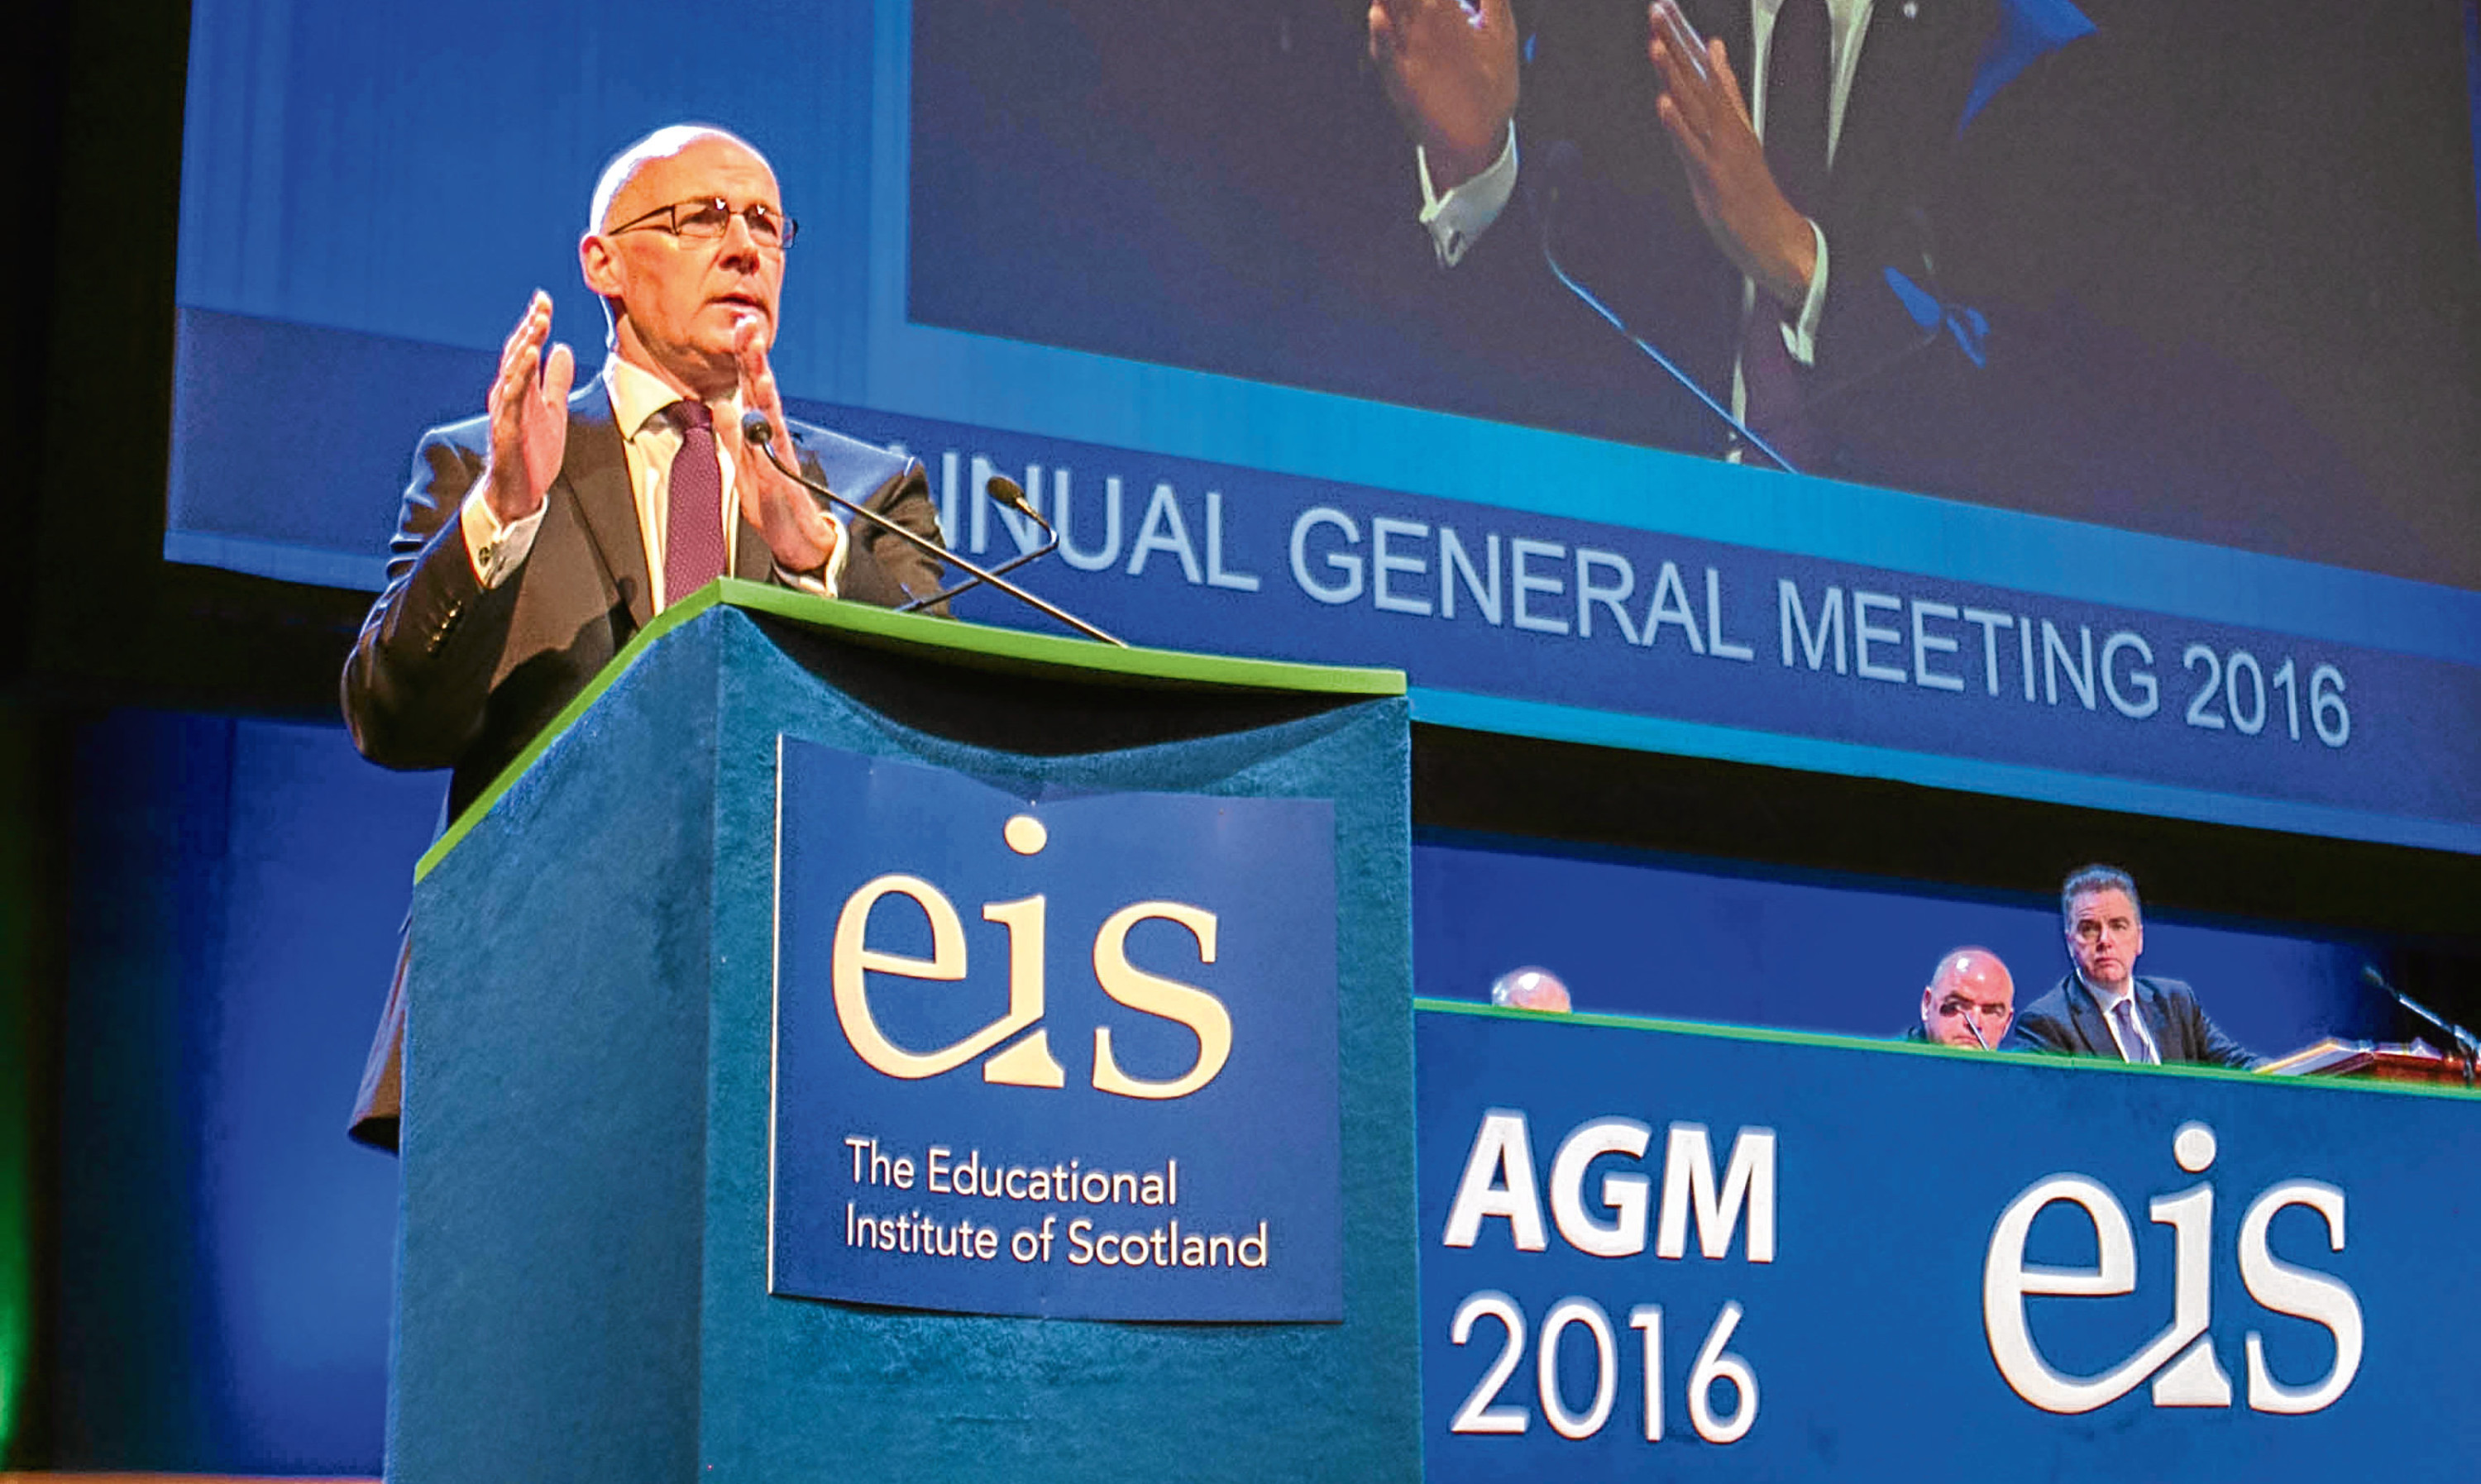 John Swinney addressing the EIS conference in Dundee this past June.